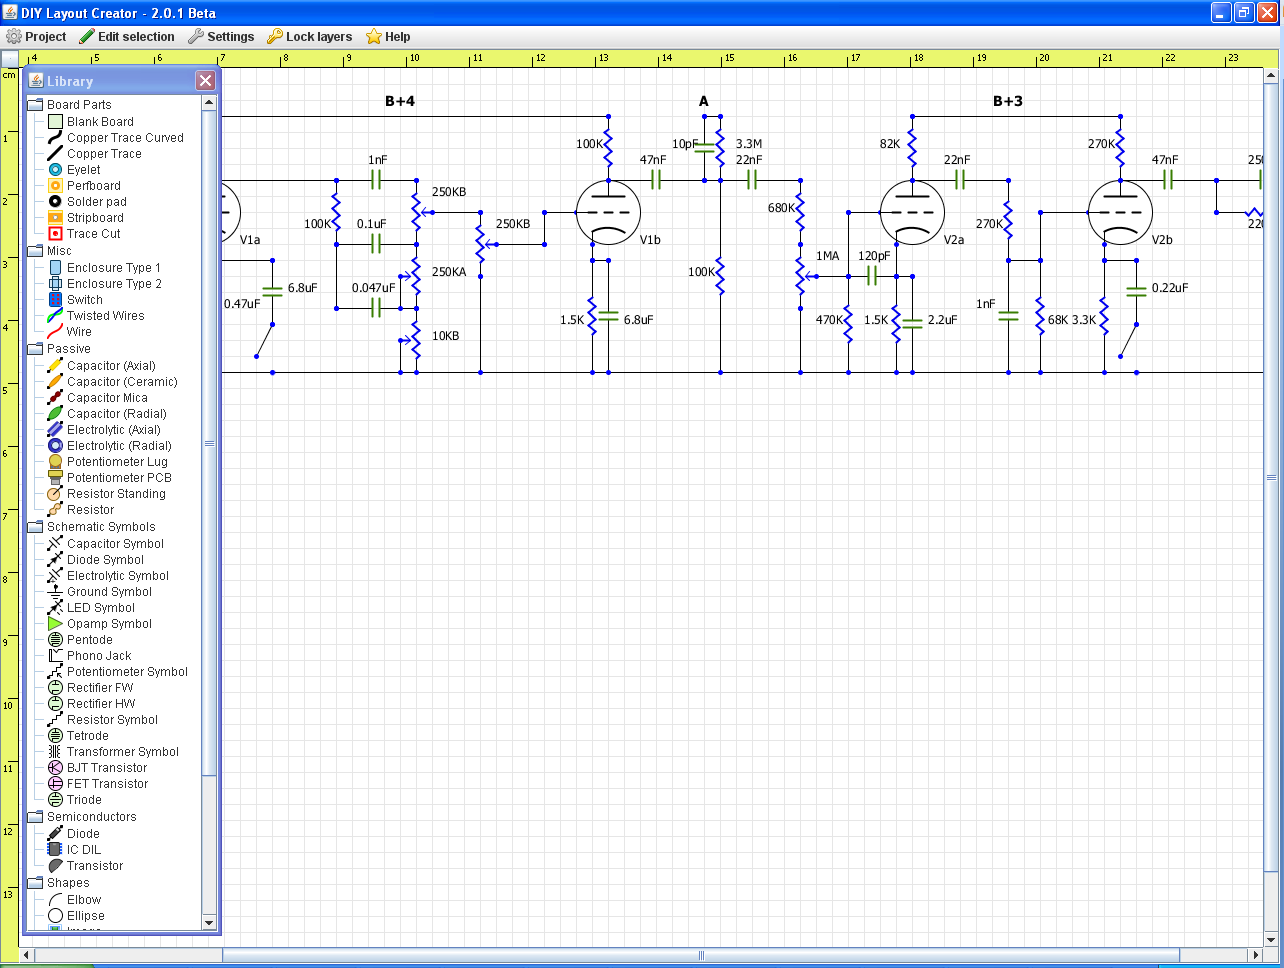 Diy Layout Creator Fever Java Breadboard Simulator This Is How You Can Use The Program Diylc 2